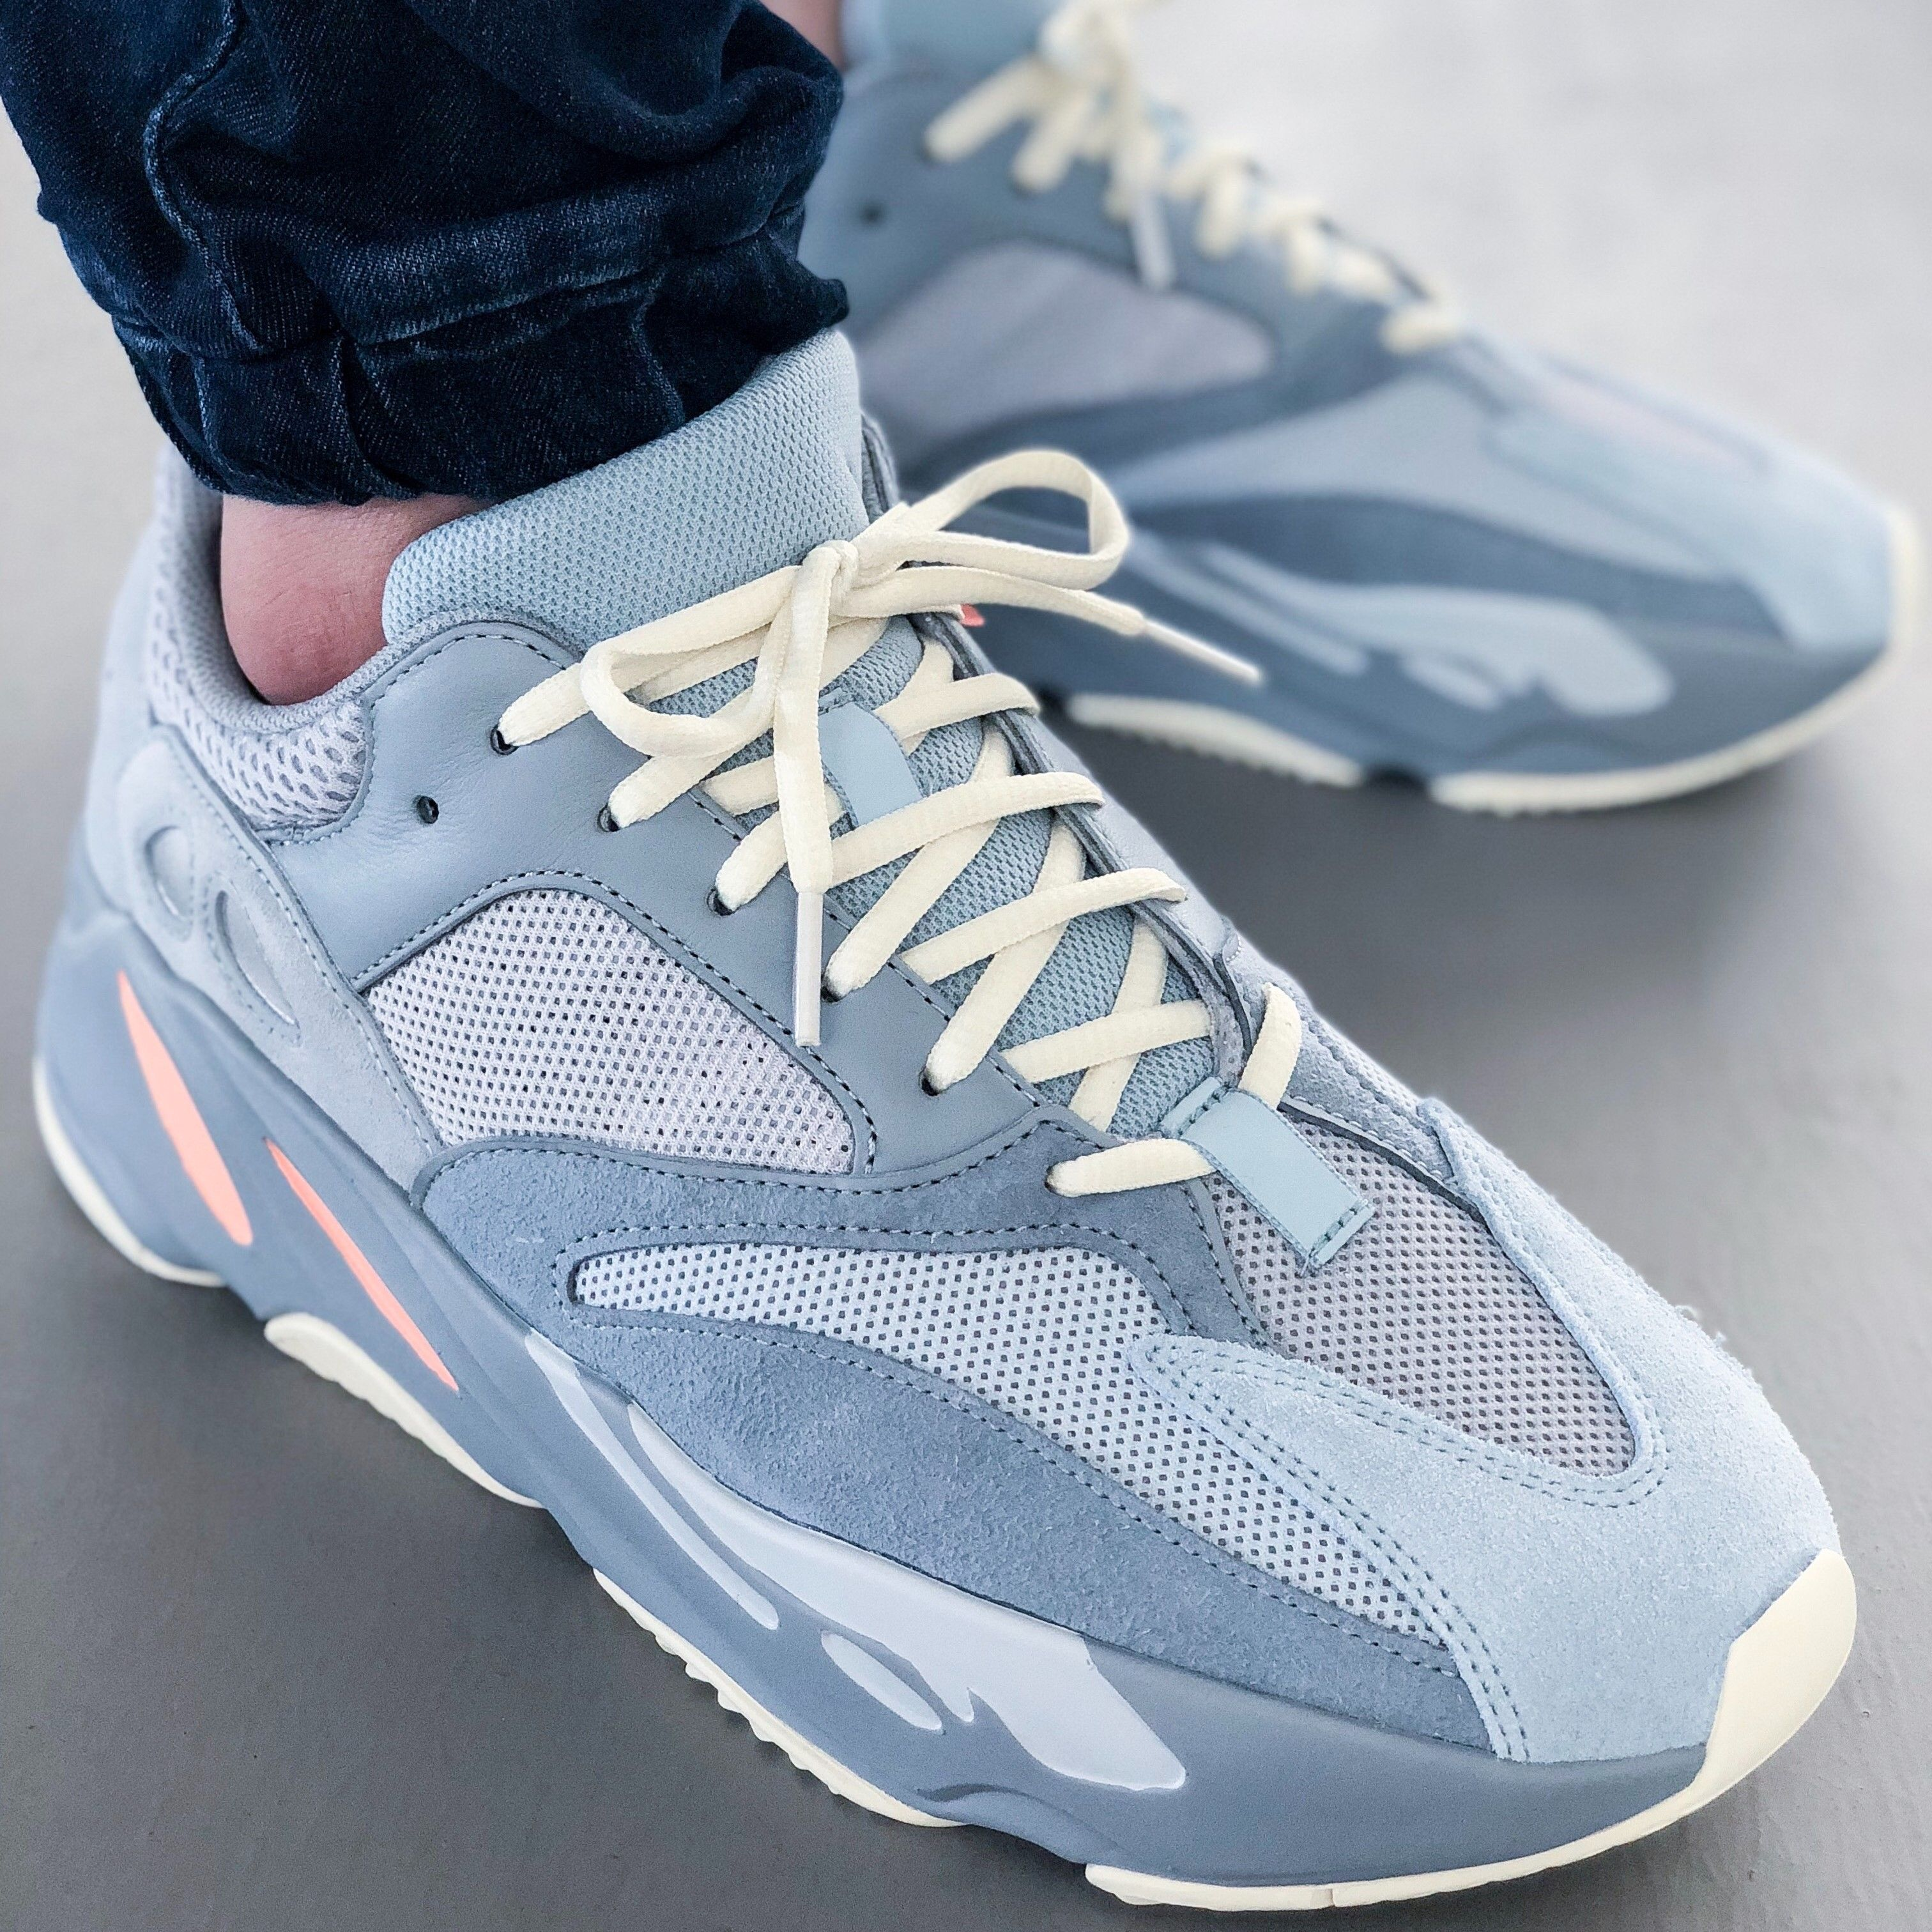 Adidas yeezy 700 only $46 in and get one free